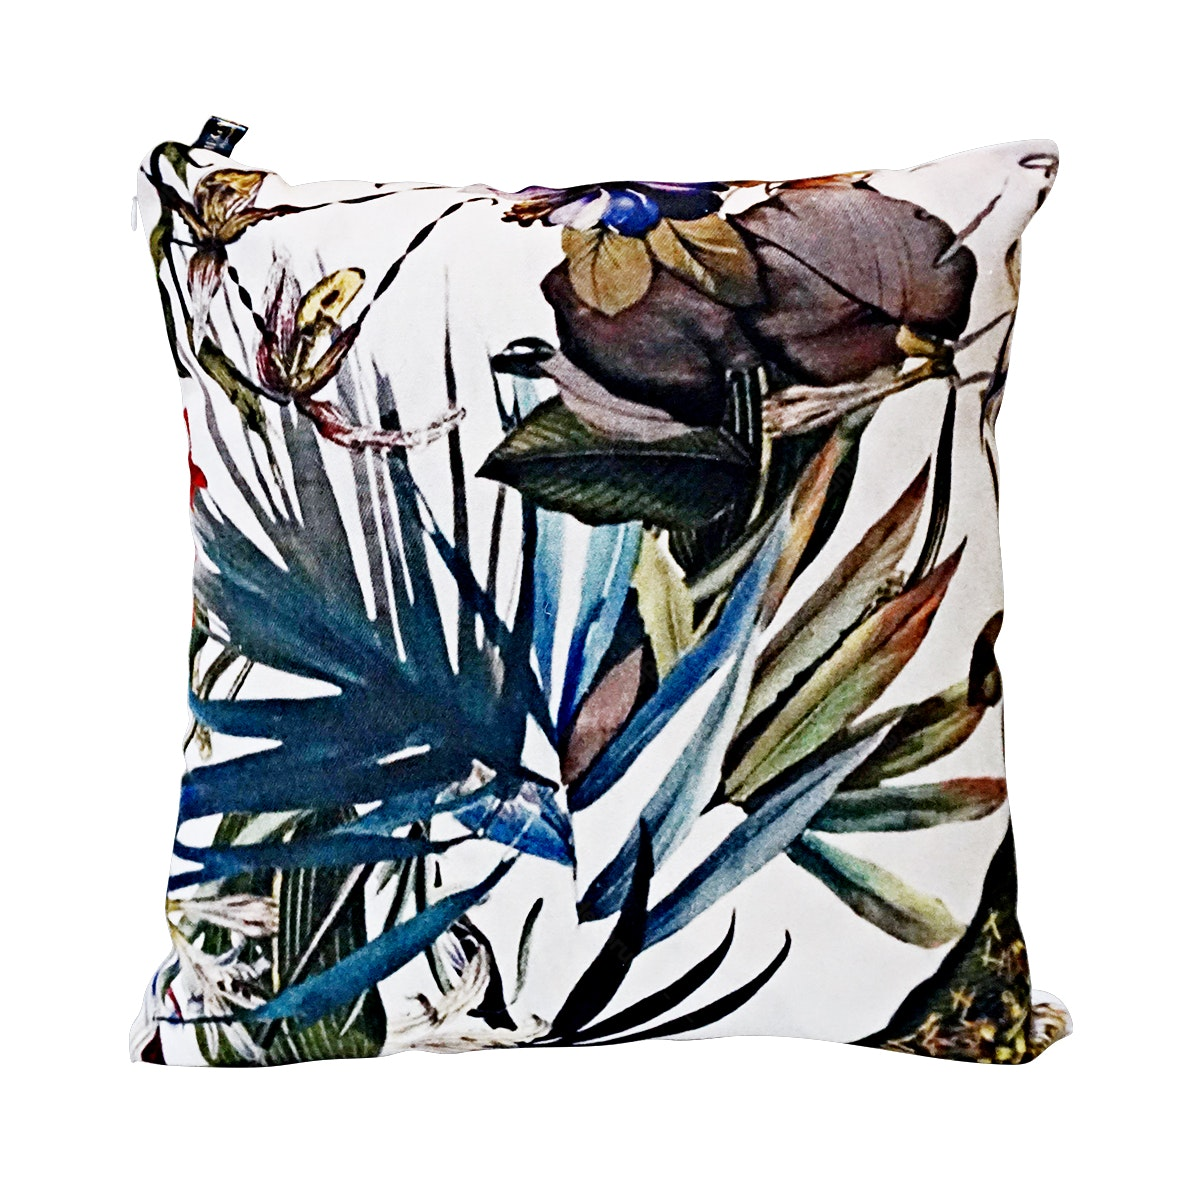 Megallery Cover Cushion C10 40x40cm